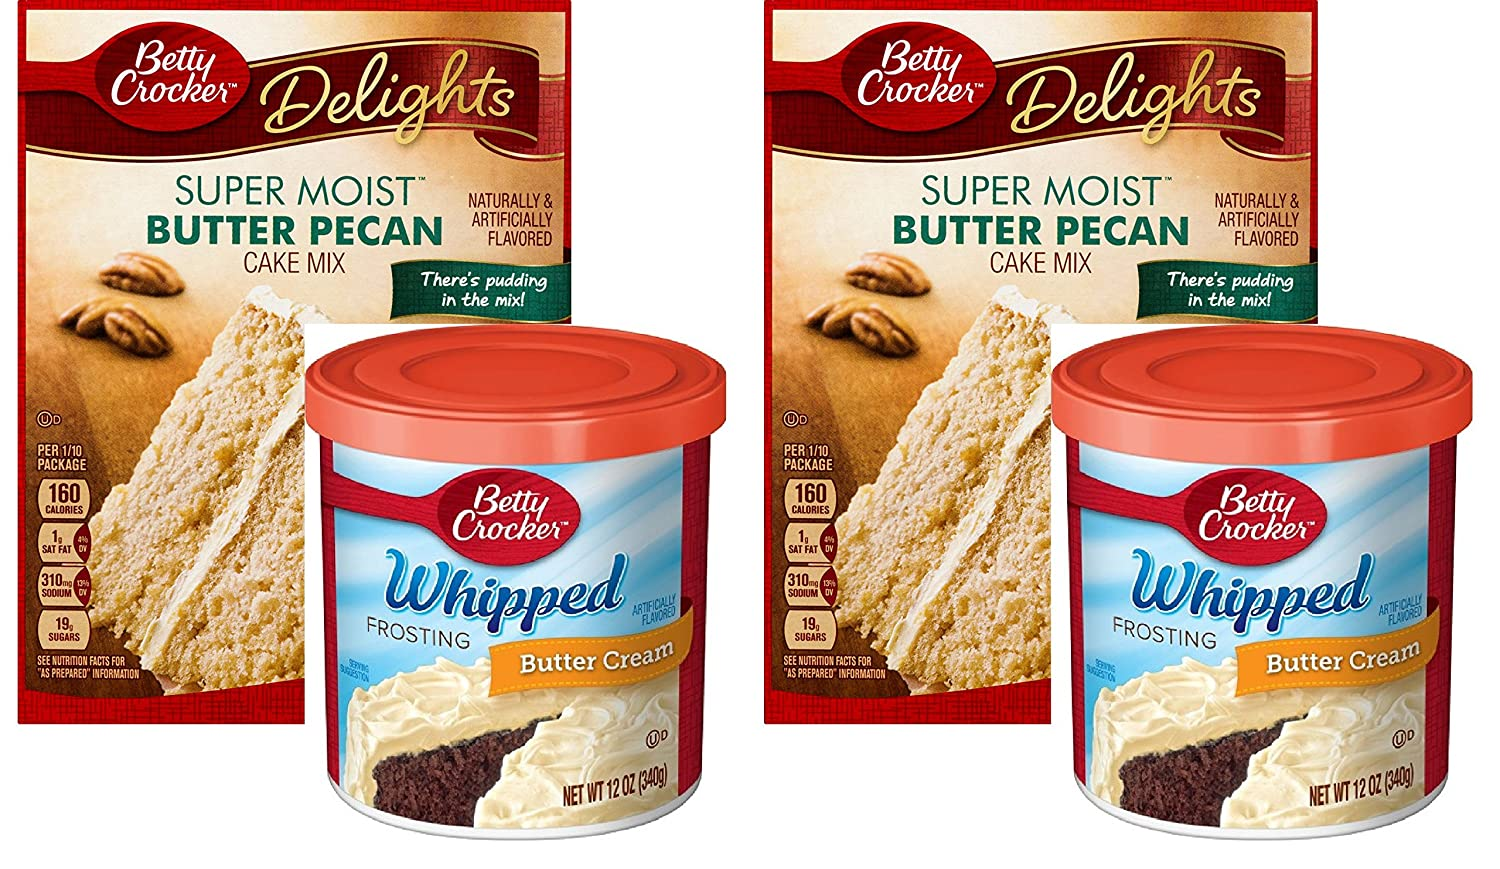 Amazon.com : Betty Crocker Super Moist Butter Pecan Cake Mix and Betty Crocker Whipped Buttercream Frosting Bundle - 2 of Each - 4 Items : Grocery & Gourmet ...